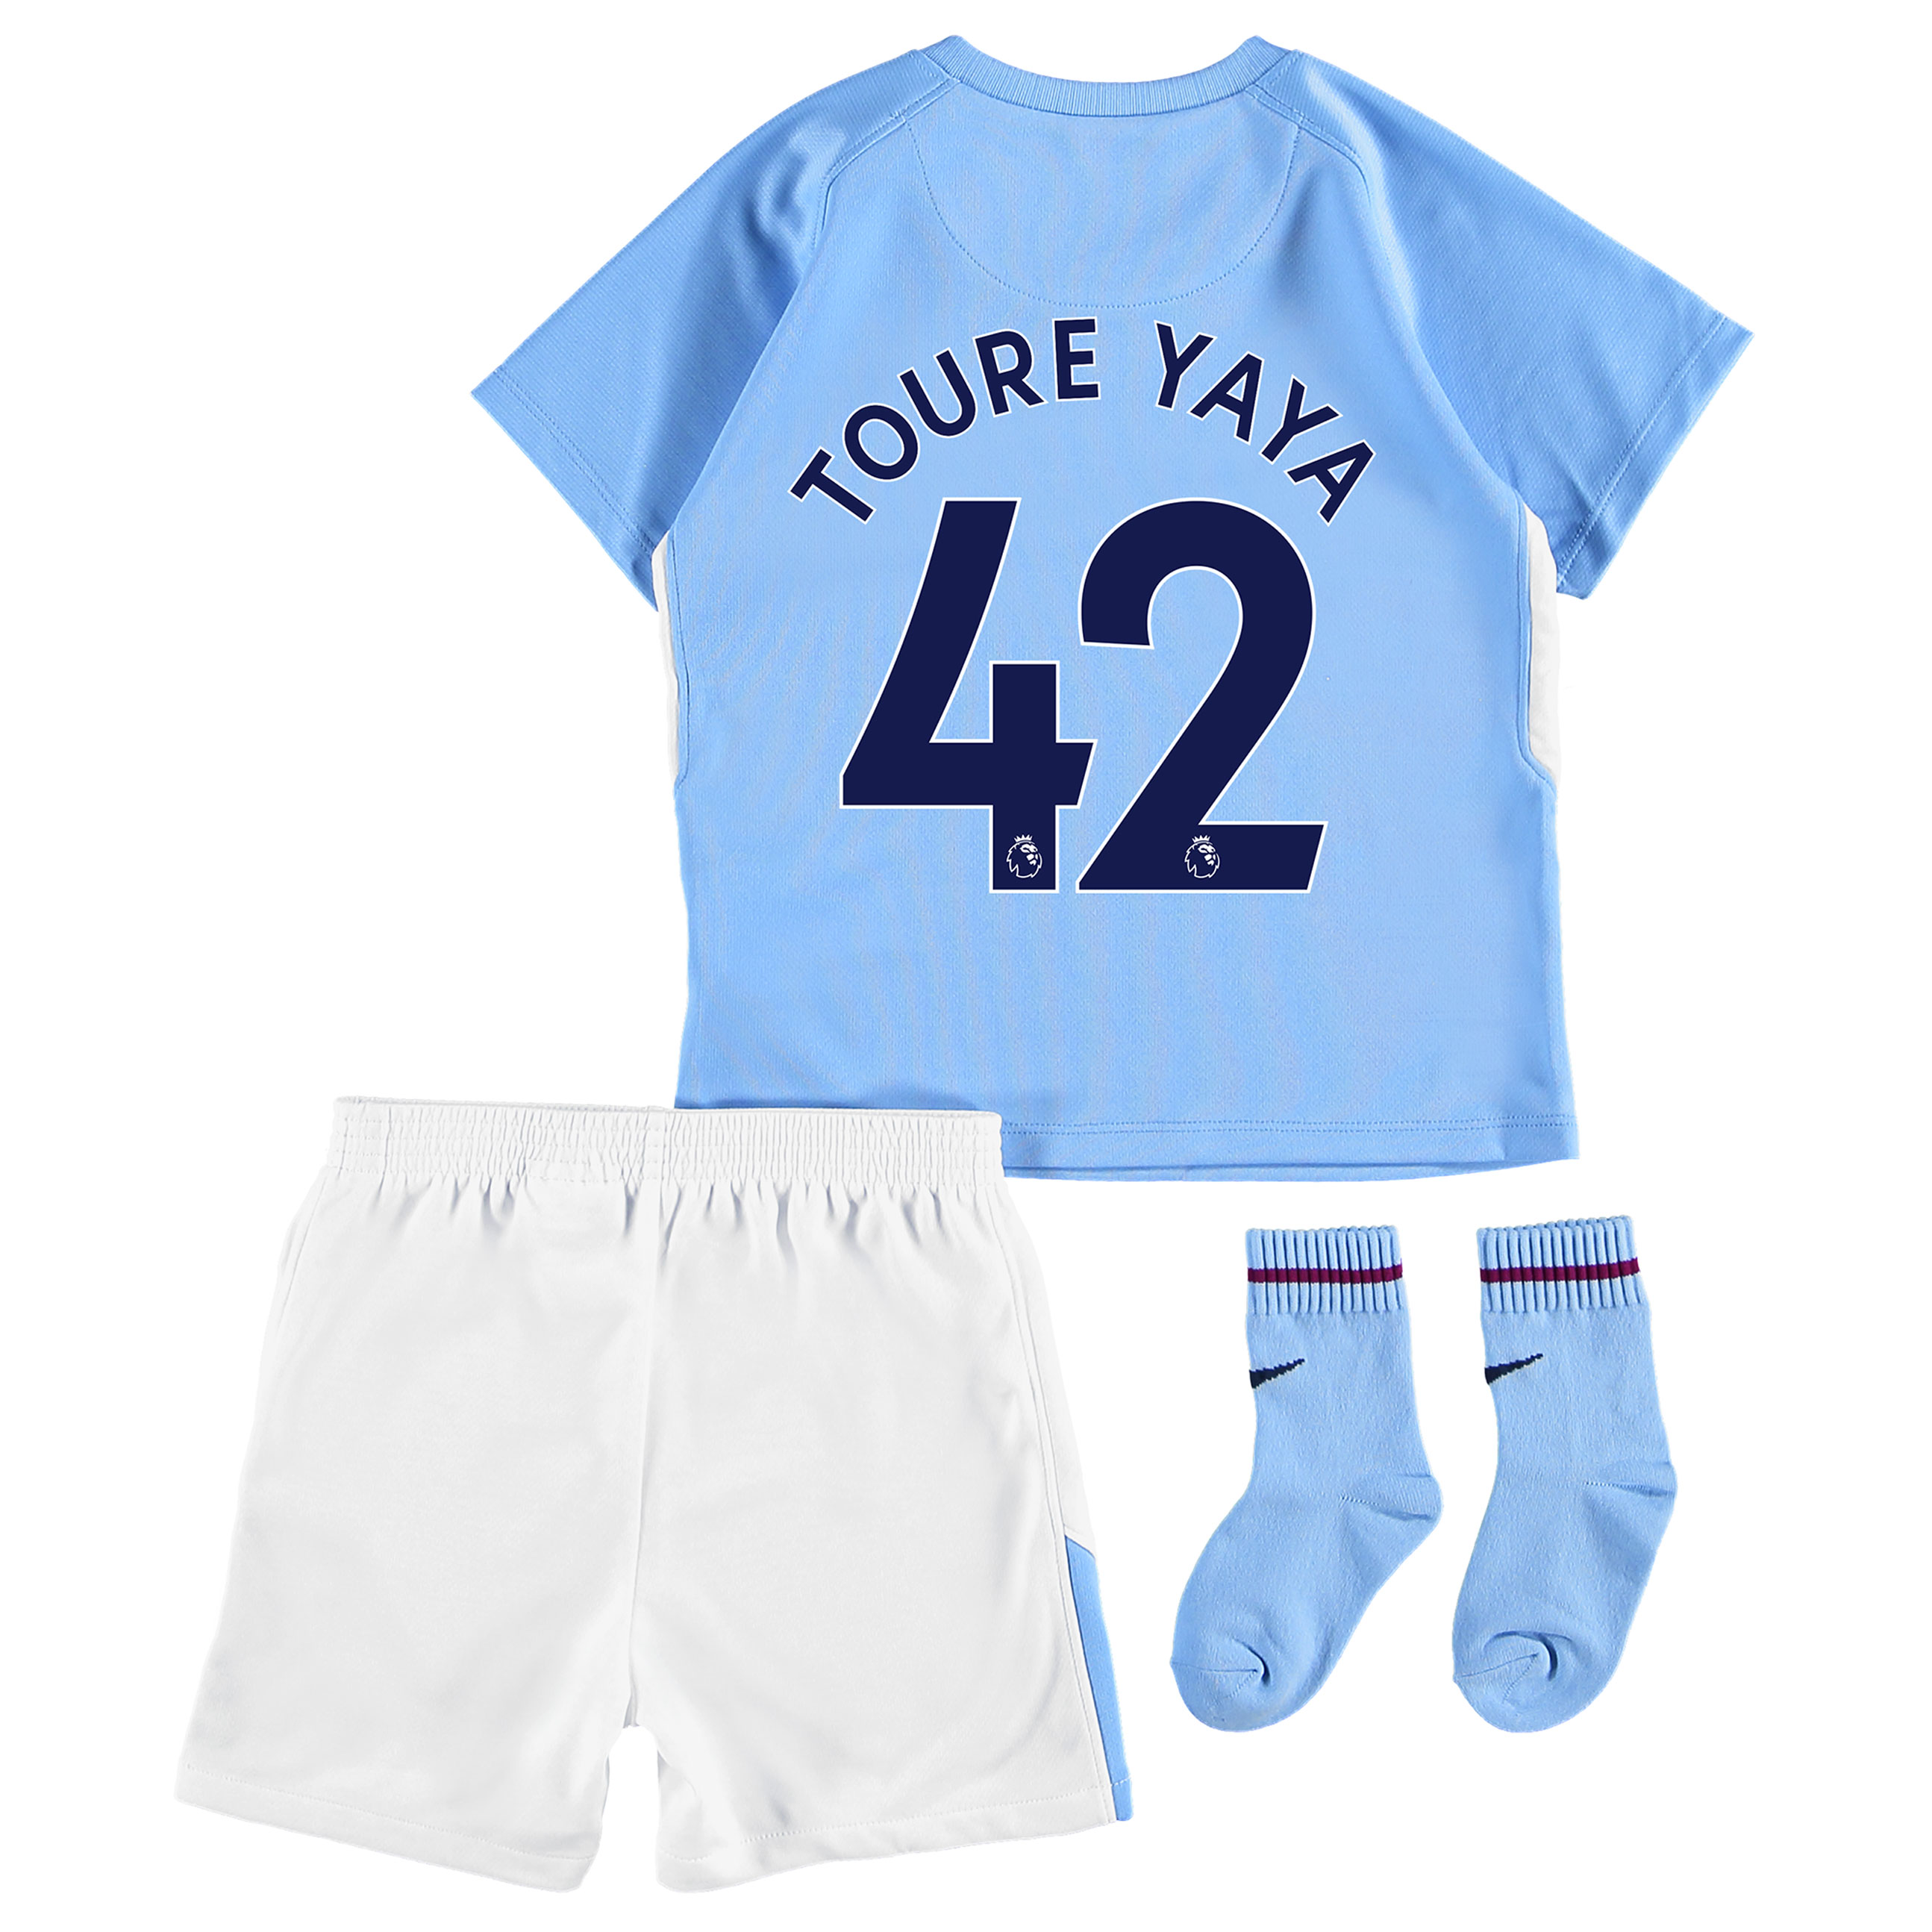 Manchester City Home Stadium Kit 2017-18 - Infants with Toure Yaya 42